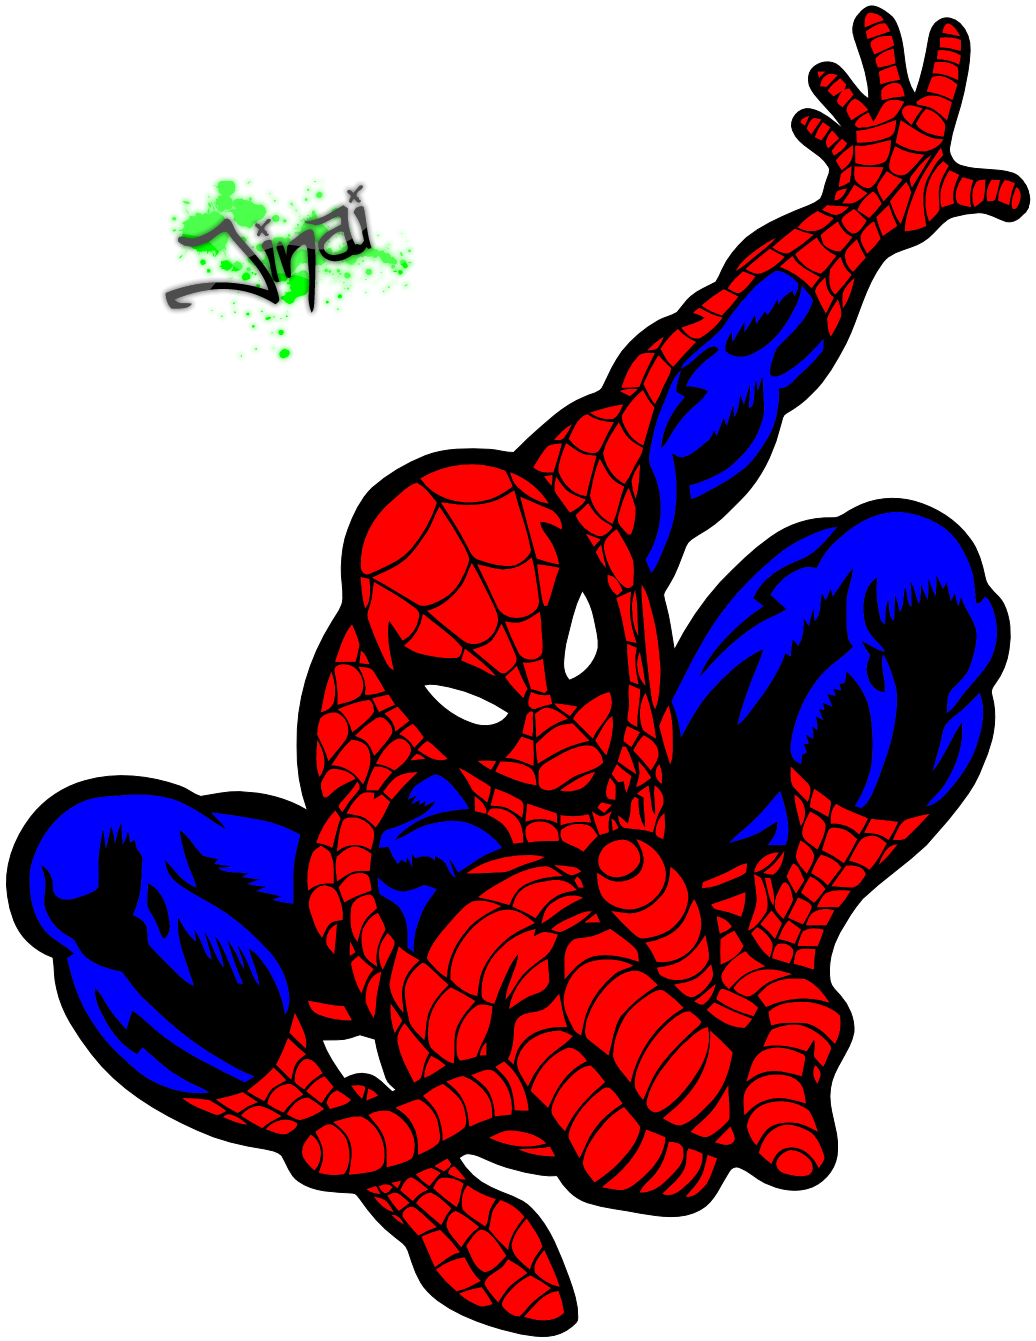 Spiderman dessin couleur - Spider man en dessin ...